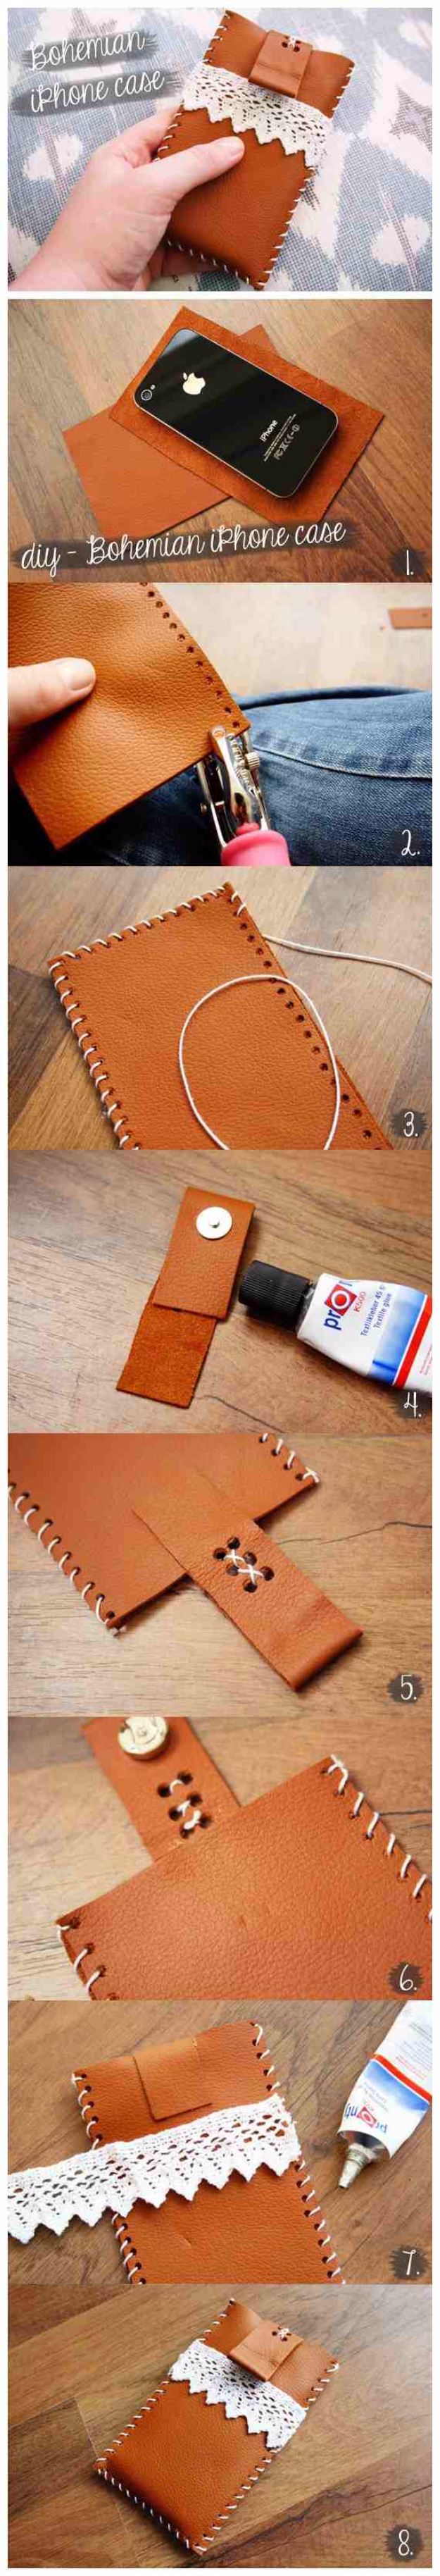 Best DIY Gifts for Girls - Bohemian Style Iphone Case - Cute Crafts and DIY Projects that Make Cool DYI Gift Ideas for Young and Older Girls, Teens and Teenagers - Awesome Room and Home Decor for Bedroom, Fashion, Jewelry and Hair Accessories - Cheap Craft Projects To Make For a Girl -DIY Christmas Presents for Tweens #diygifts #girlsgifts